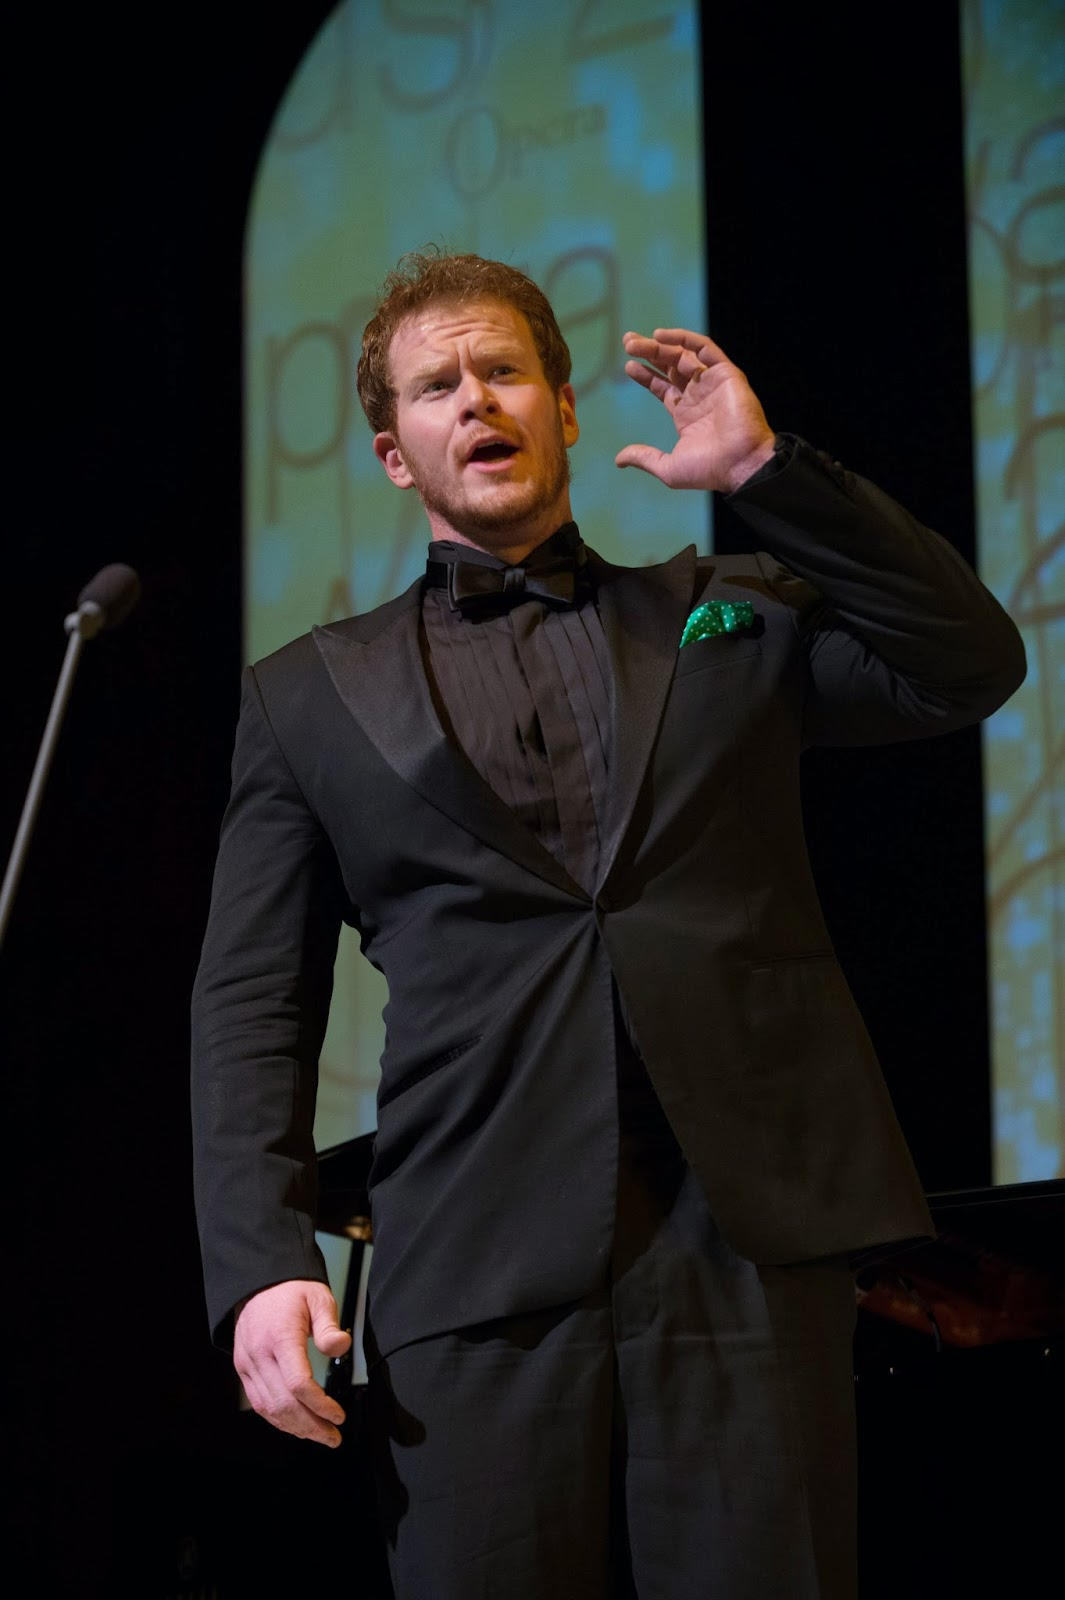 Duncan Rock performing at the Opera Awards - credit Jim Winslet